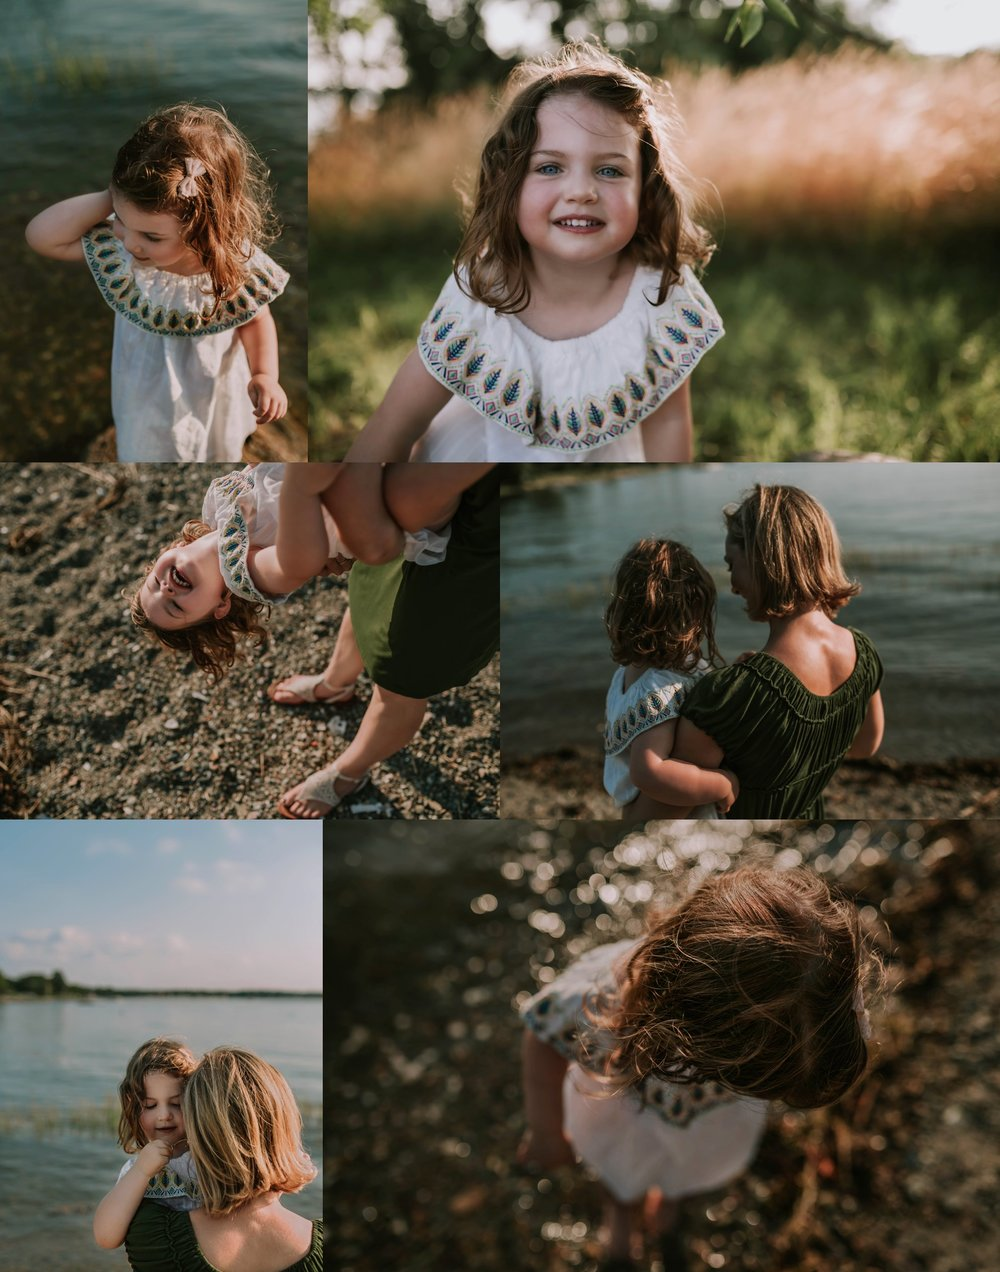 Summers_August_2018-135_Beautiful_Natural_Portraits_by_Award_Winning_Boston_Massachusetts_Family_Portrait_Photographer_Asher_and_Oak_Photography.jpg